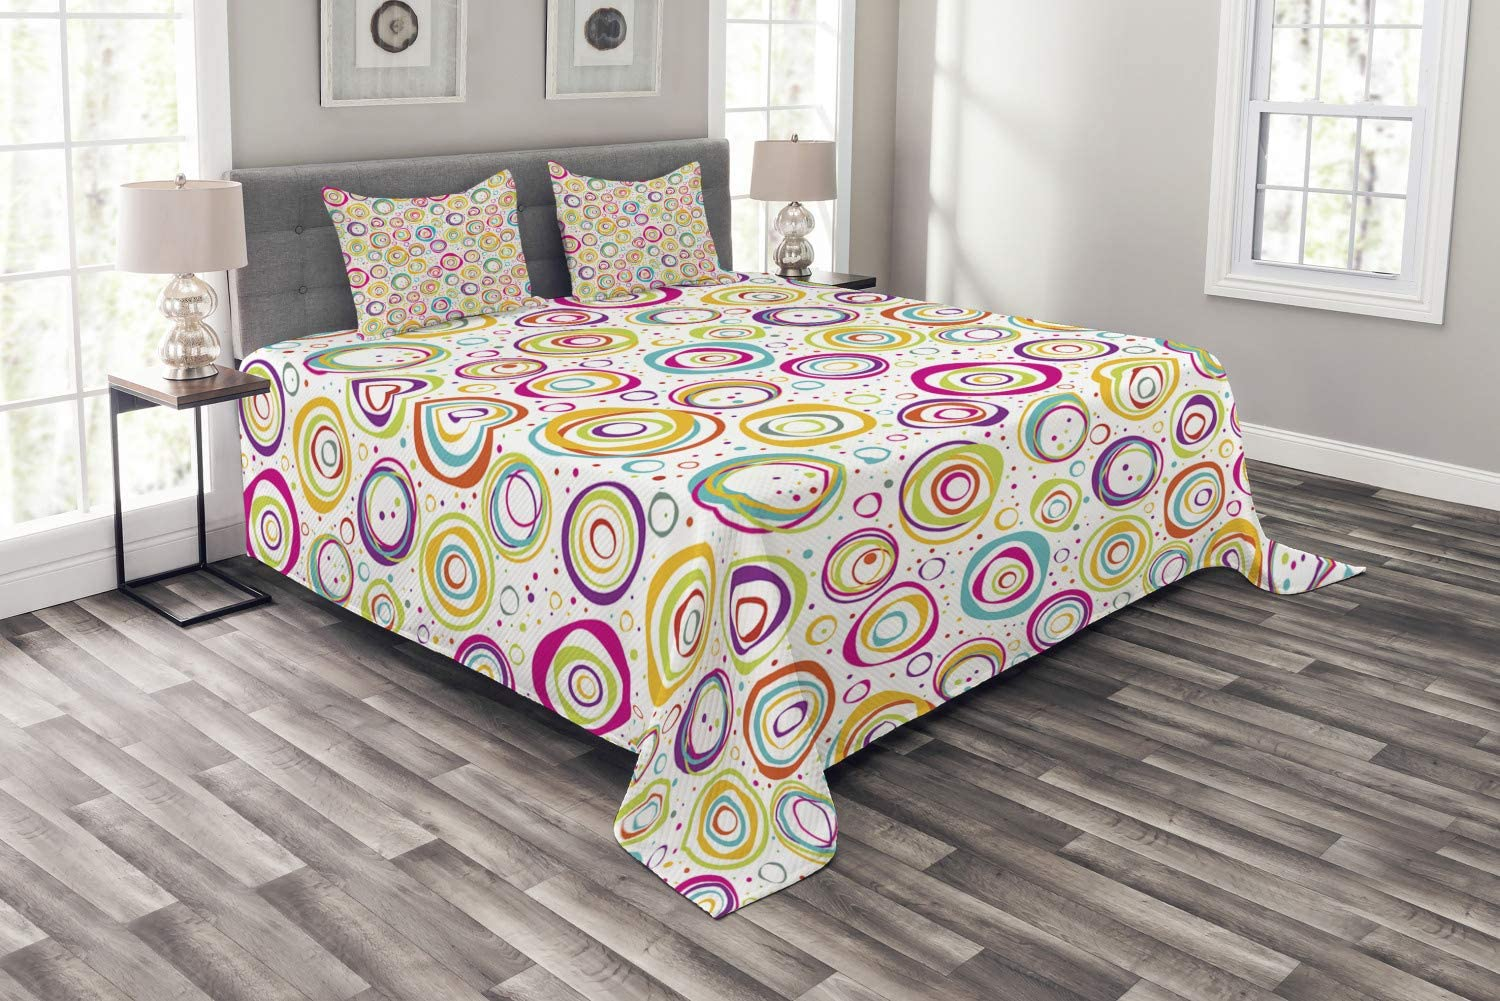 Ambesonne Geometric Bedspread King Size Multicolor Childish Spirals with Funny Dots Bubbles Background Kids Nursery Theme Print Decorative Quilted 3 Piece Coverlet Set with 2 Pillow Shams